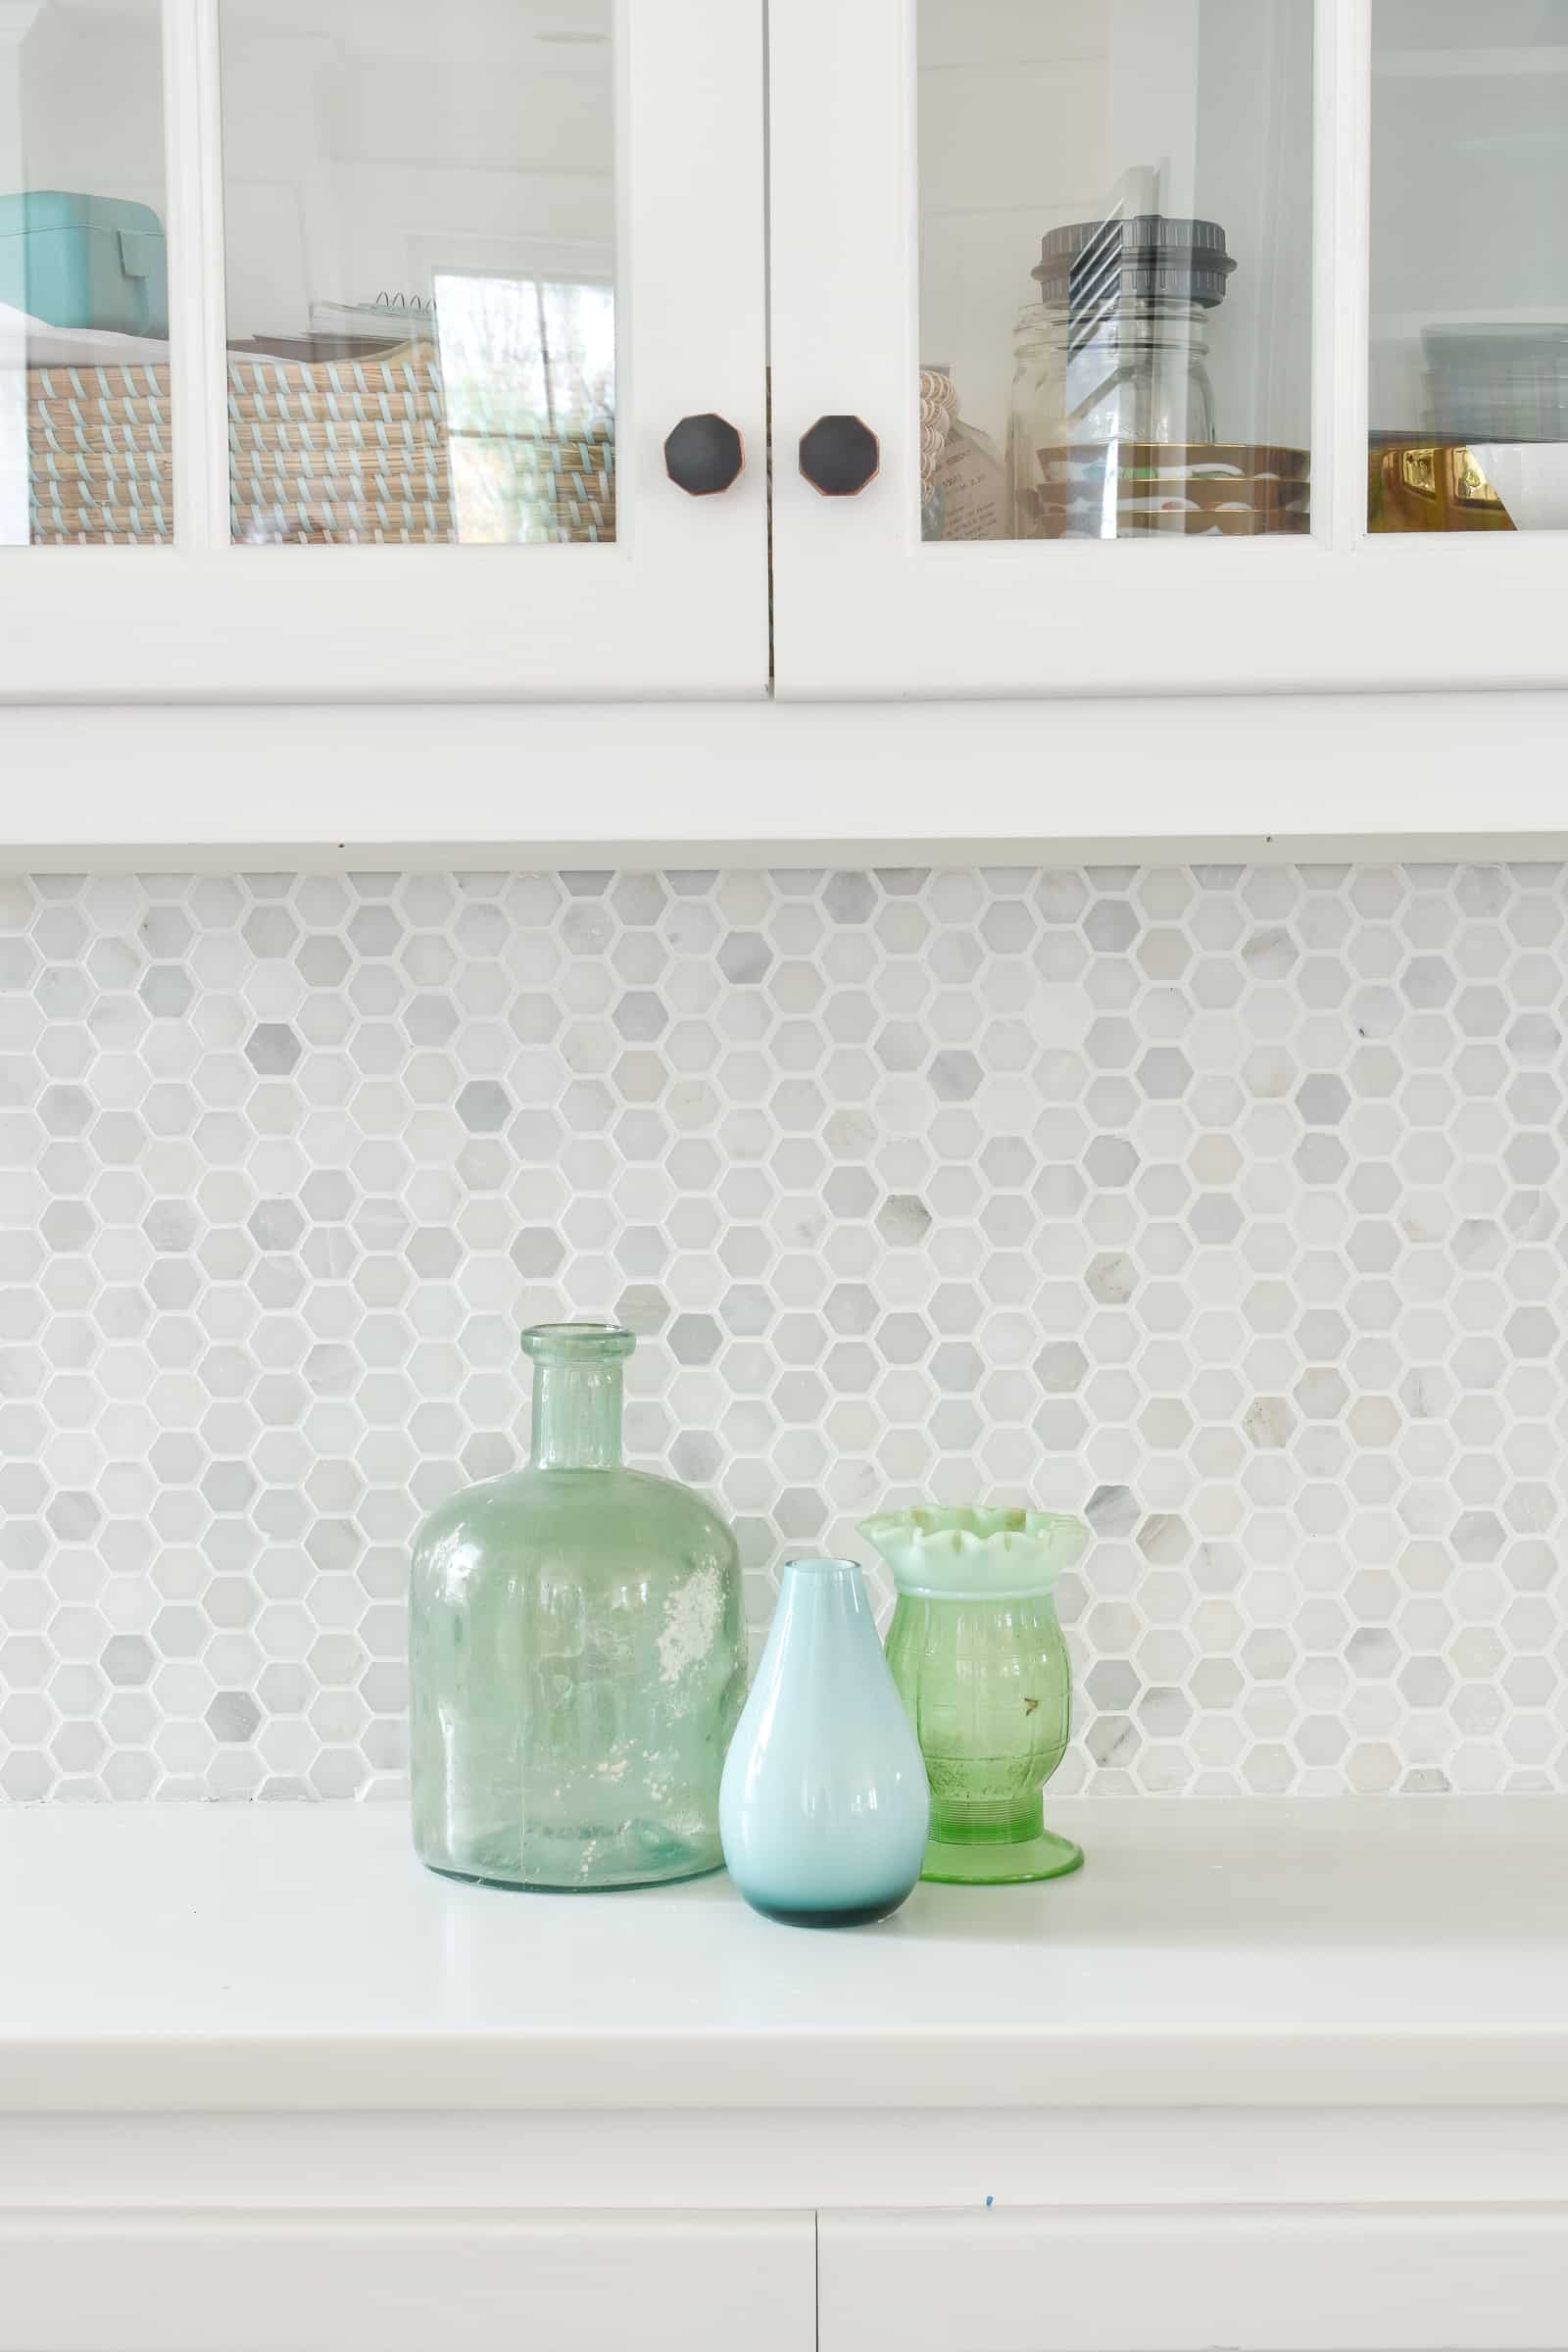 Greatest New Improved Kitchen Backsplash Tile - At Charlotte's House TZ23